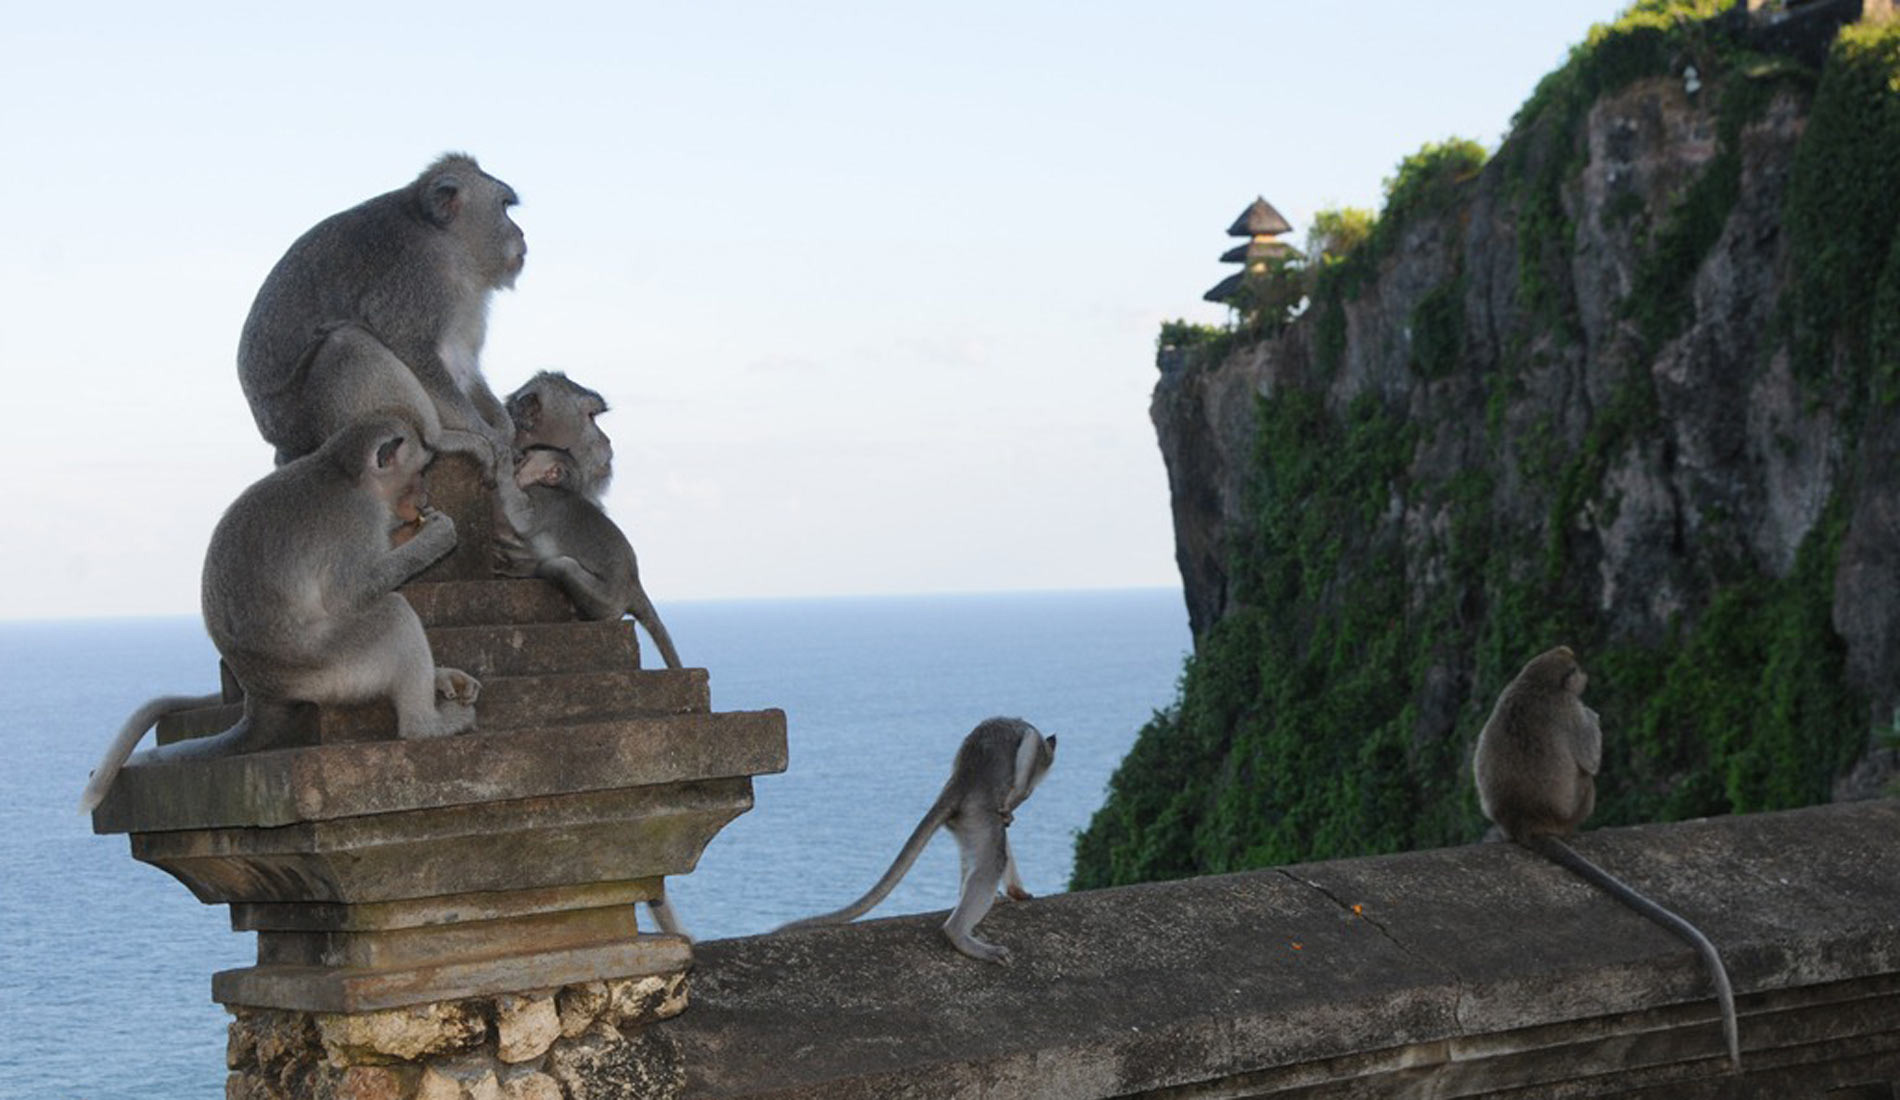 Monkey Uluwatu Temple Bali - Bali Tours Activities